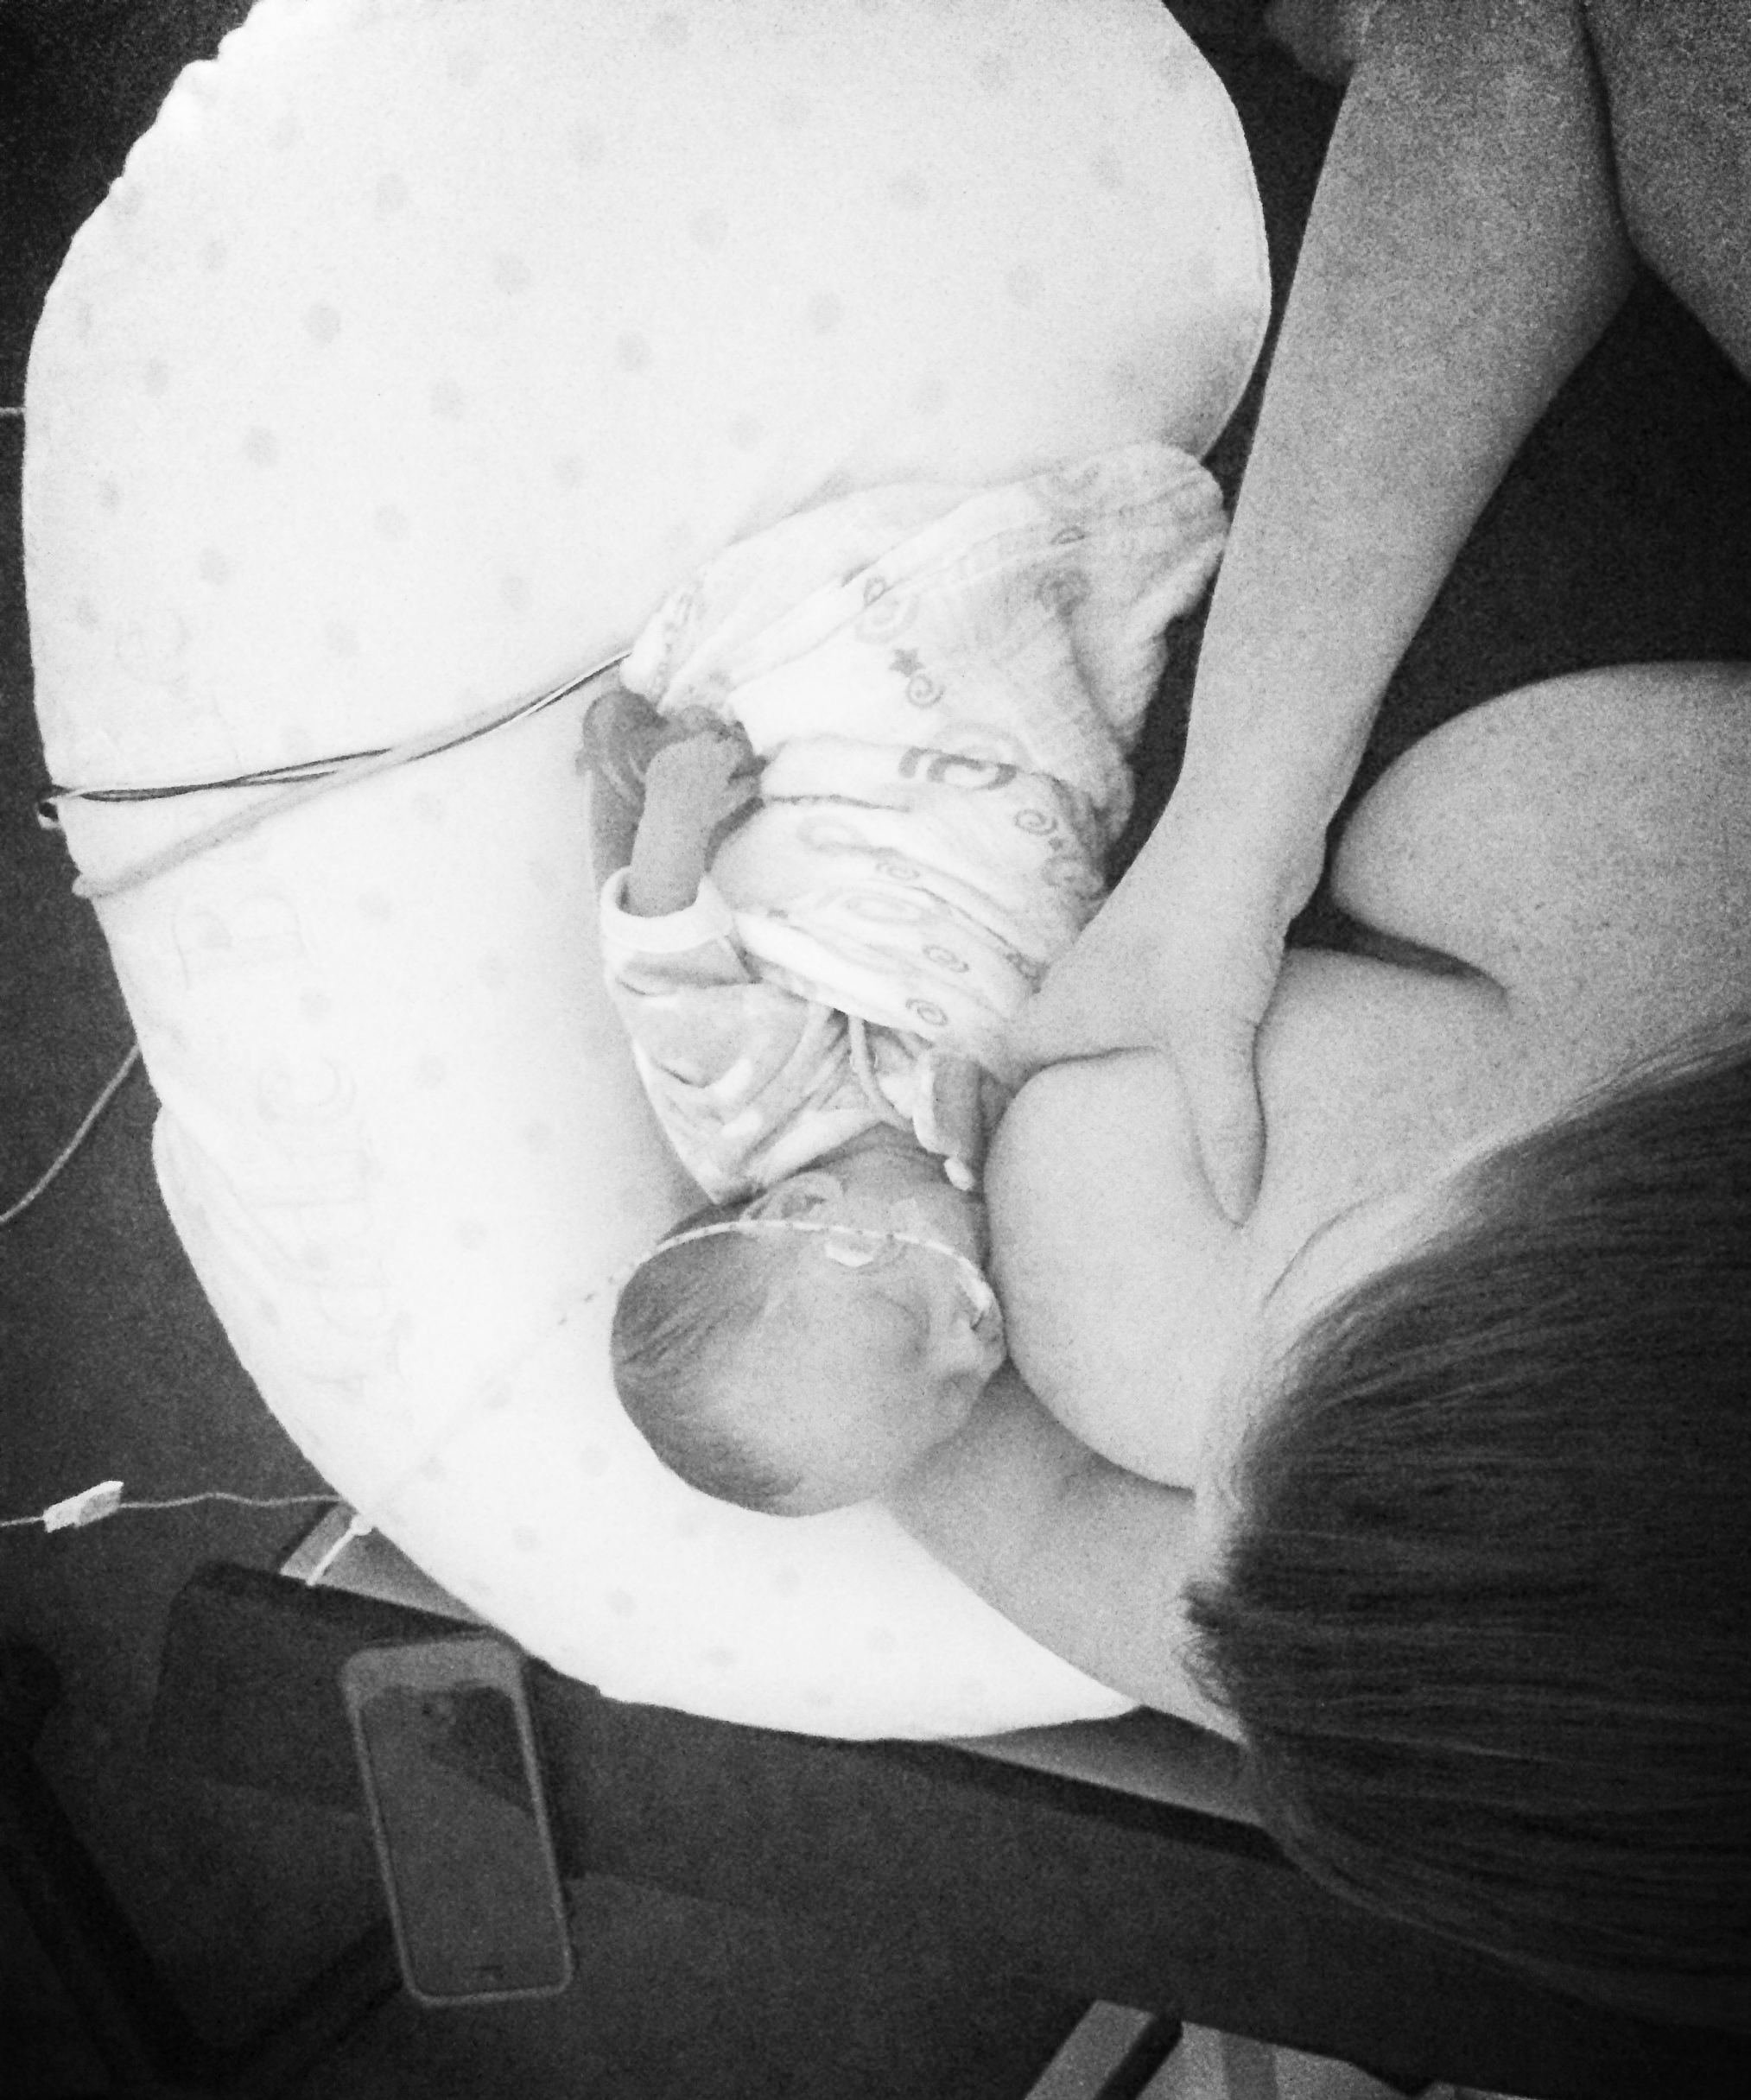 The first time we breastfed, at 3.5 months old.